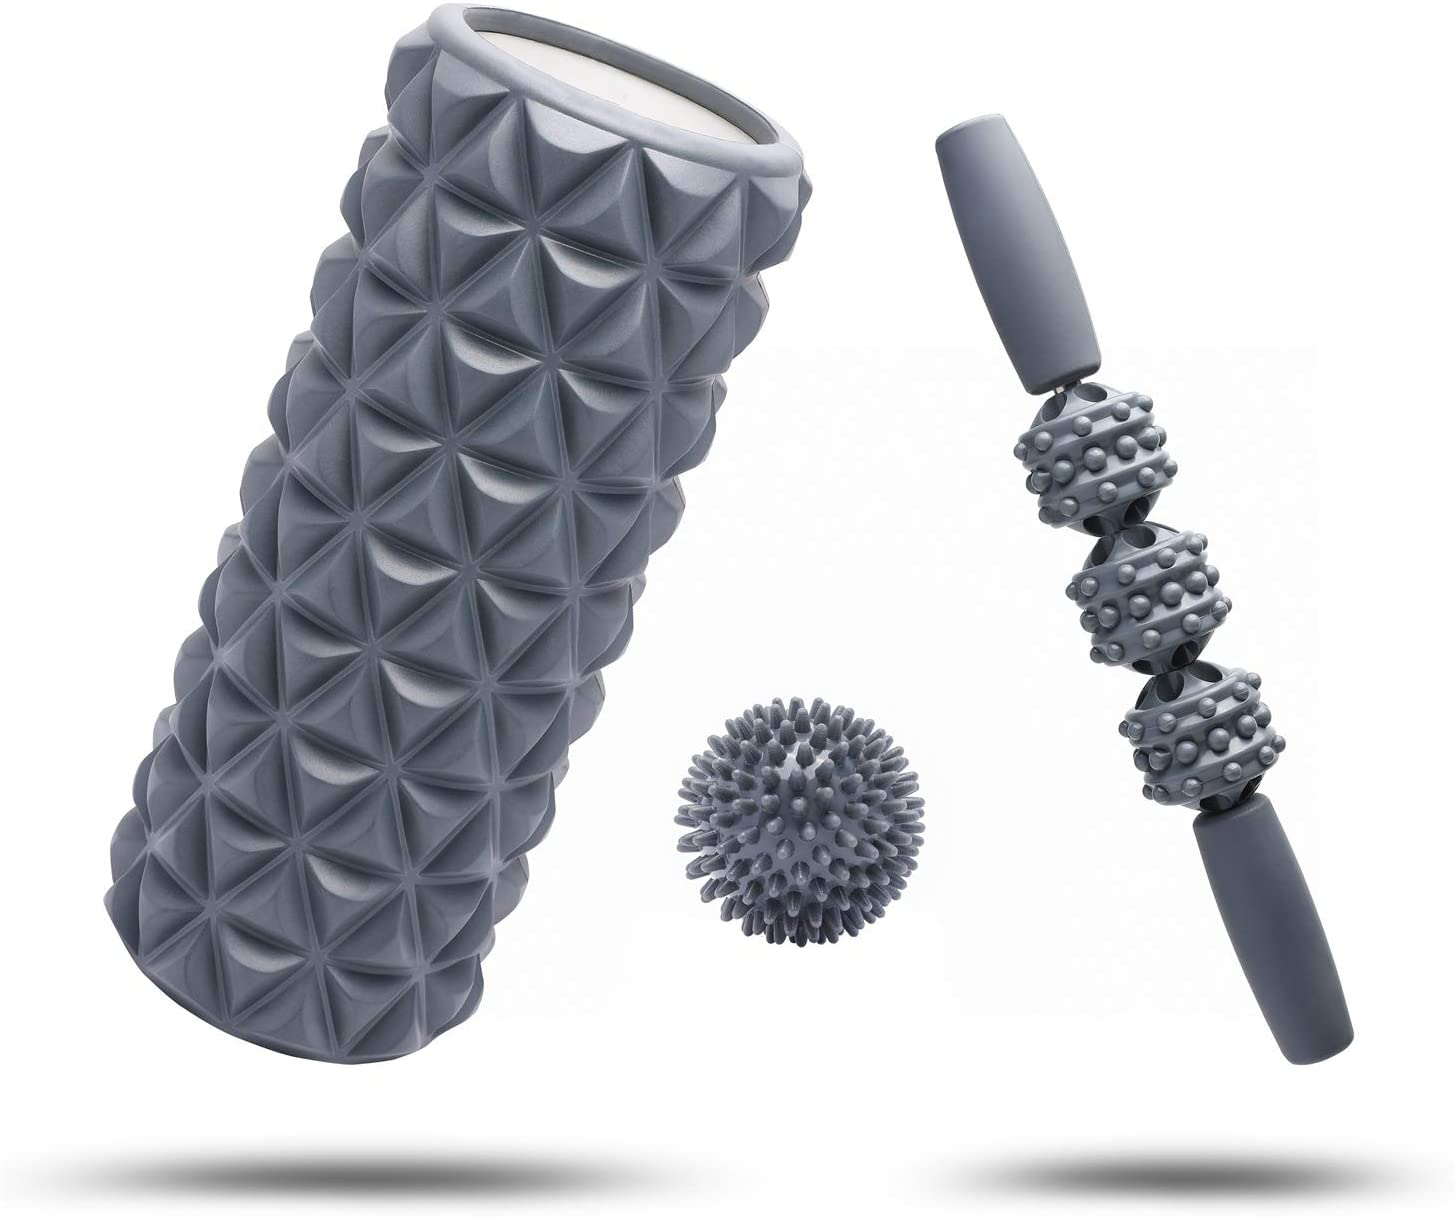 FitBeast Foam Roller Set 3 in 1 for Deep Tissue Muscle Roller, Massage Stick and Massage Ball